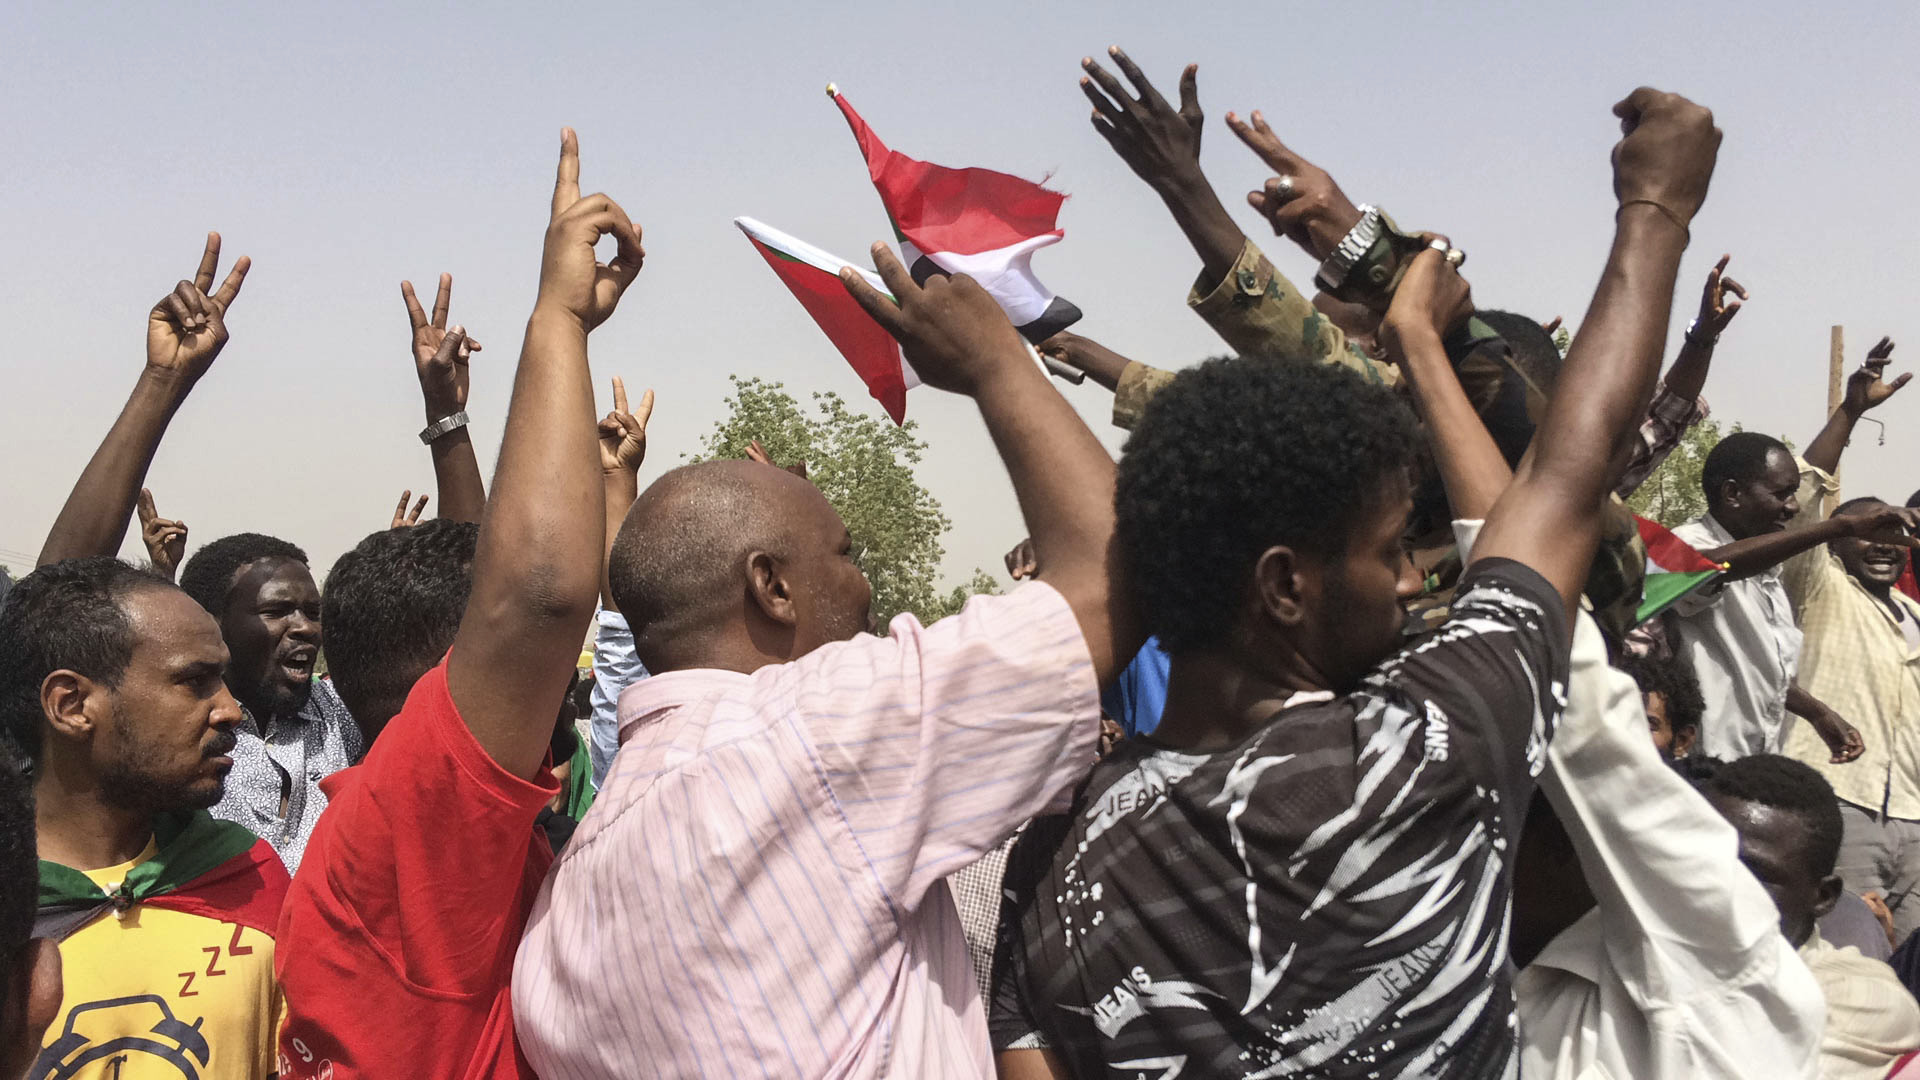 Sudanese celebrate after officials said the military had forced longtime autocratic President Omar al-Bashir to step down after 30 years in power in Khartoum, Sudan